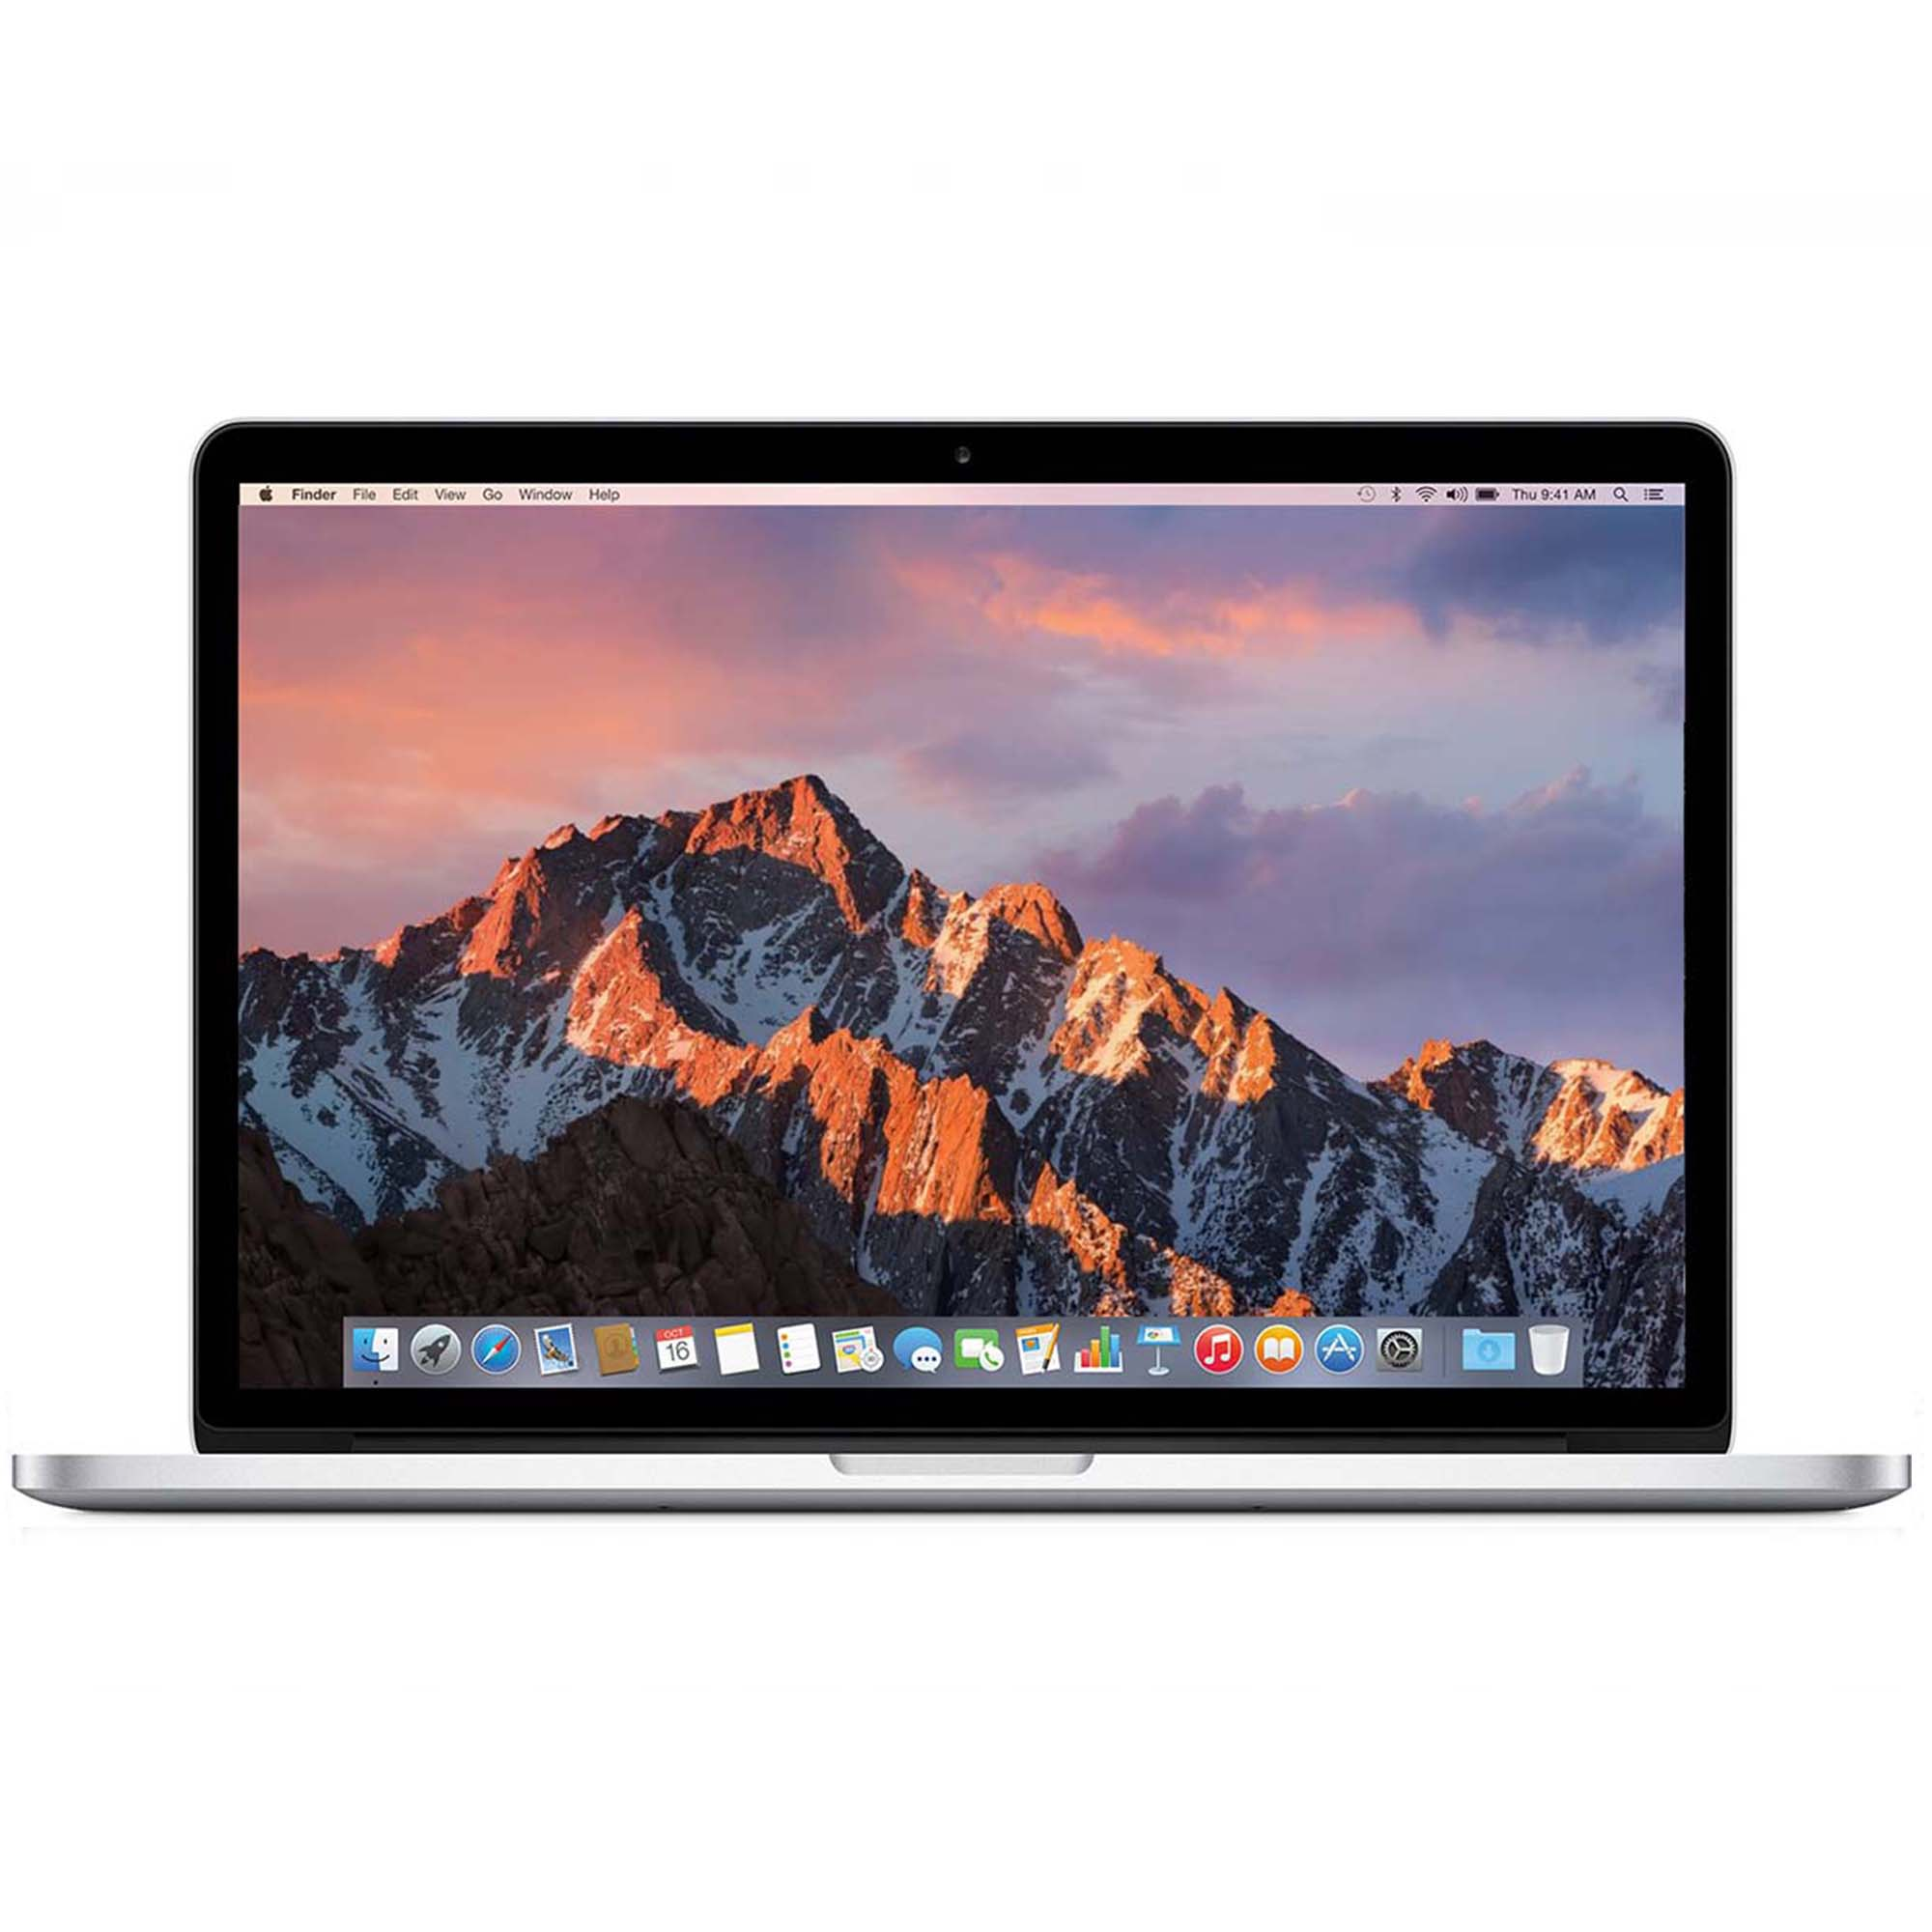 Apple Macbook Pro 17.0-INCH Laptop 2.8GHZ / 8GB DDR3 Memo...